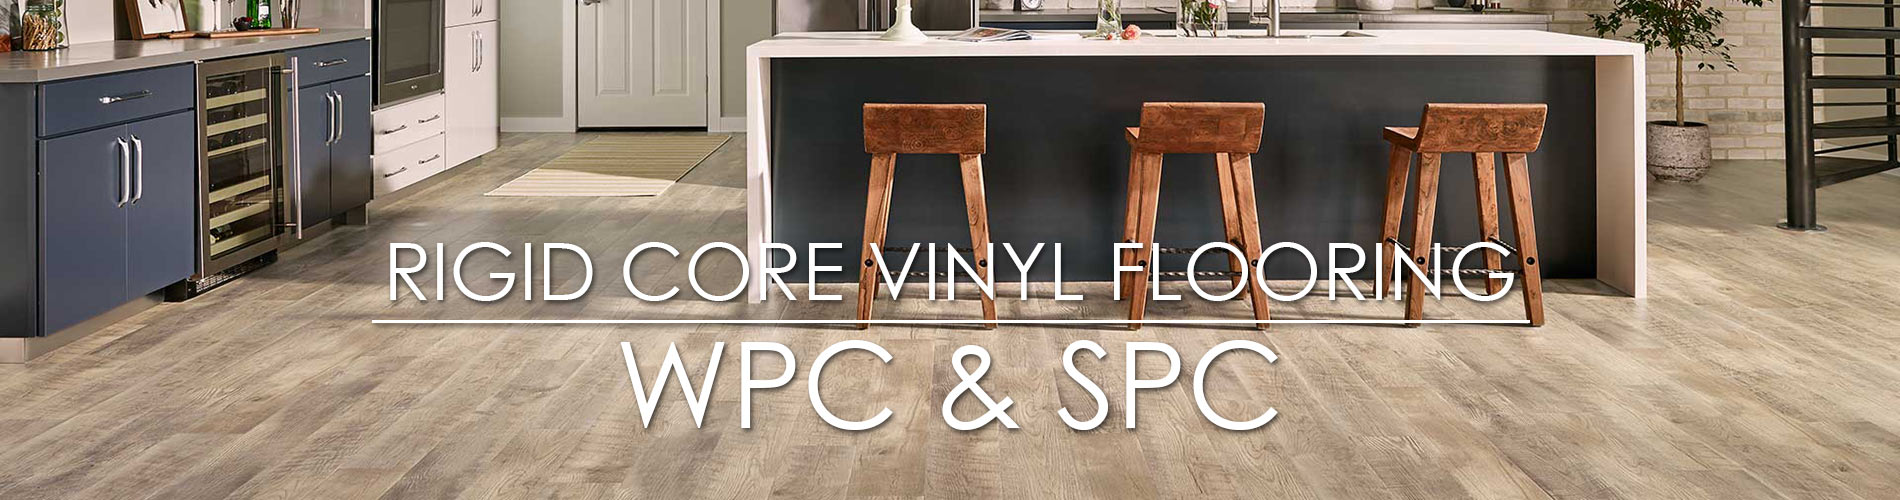 Rigid Core Luxury Vinyl: WPC & SPC